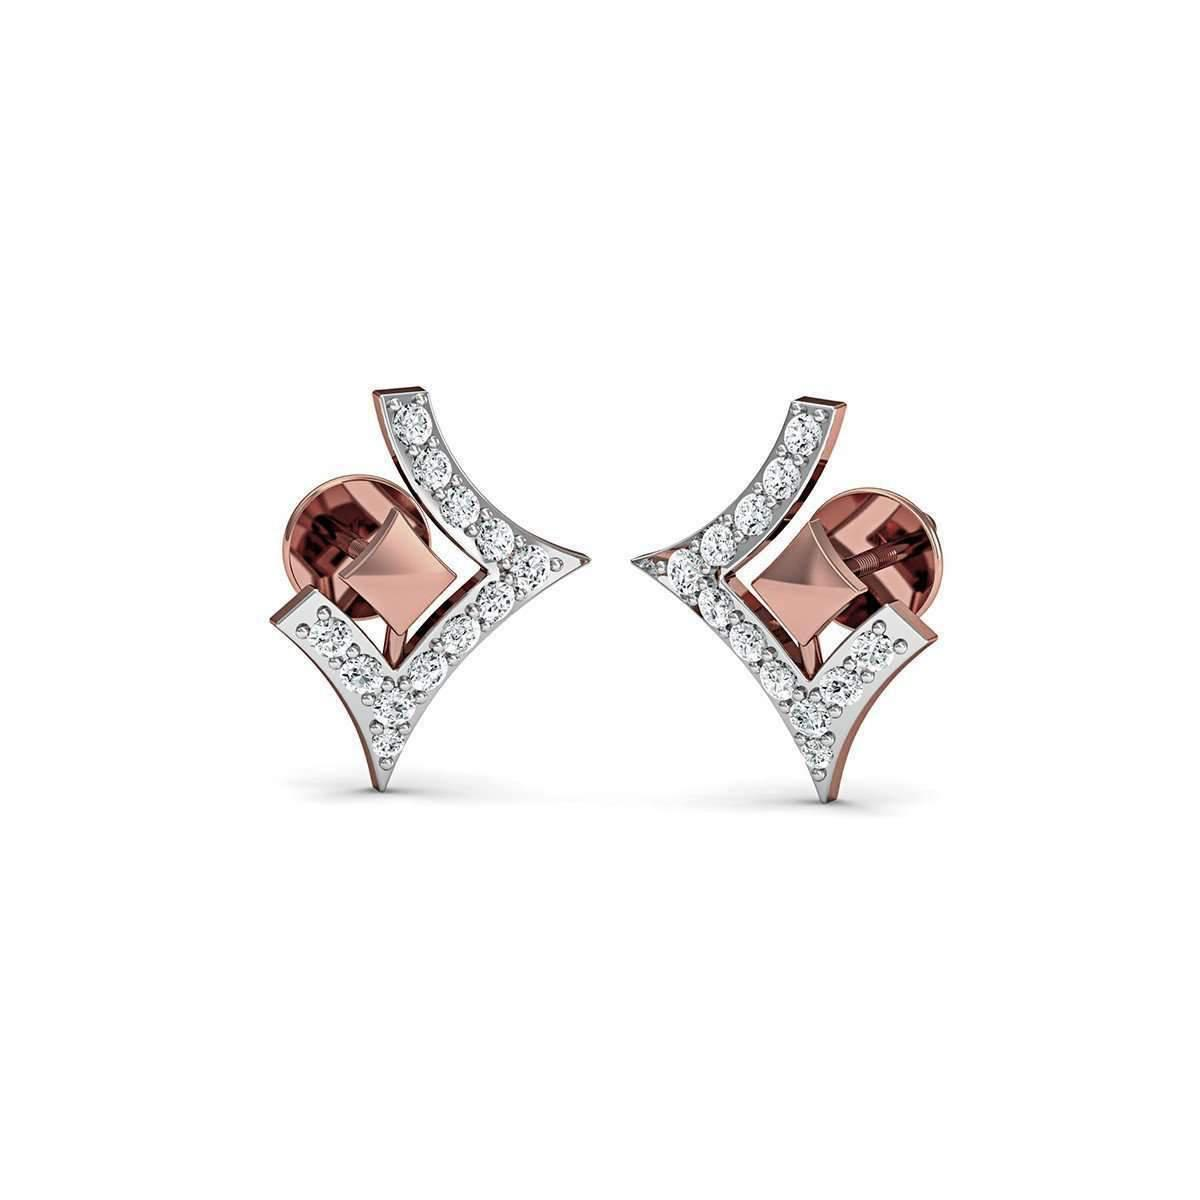 Diamoire Jewels 14kt Rose Gold Earrings with 14 Premium Quality Diamonds Inspired by Nature o926j4T